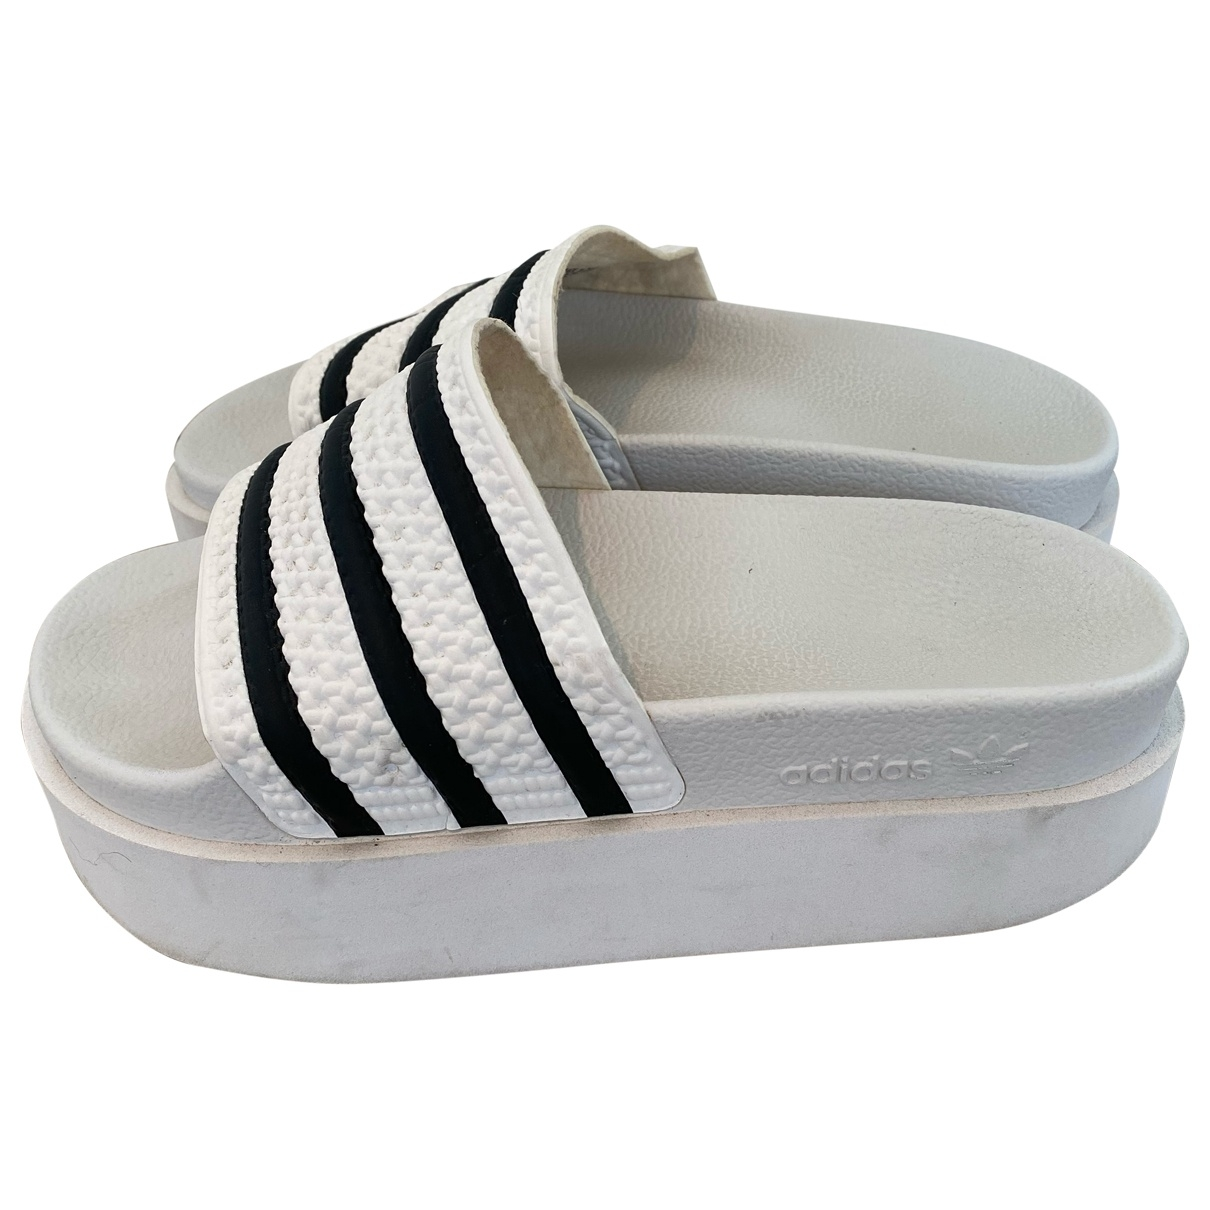 Adidas Adilette  White Sandals for Women 38 EU